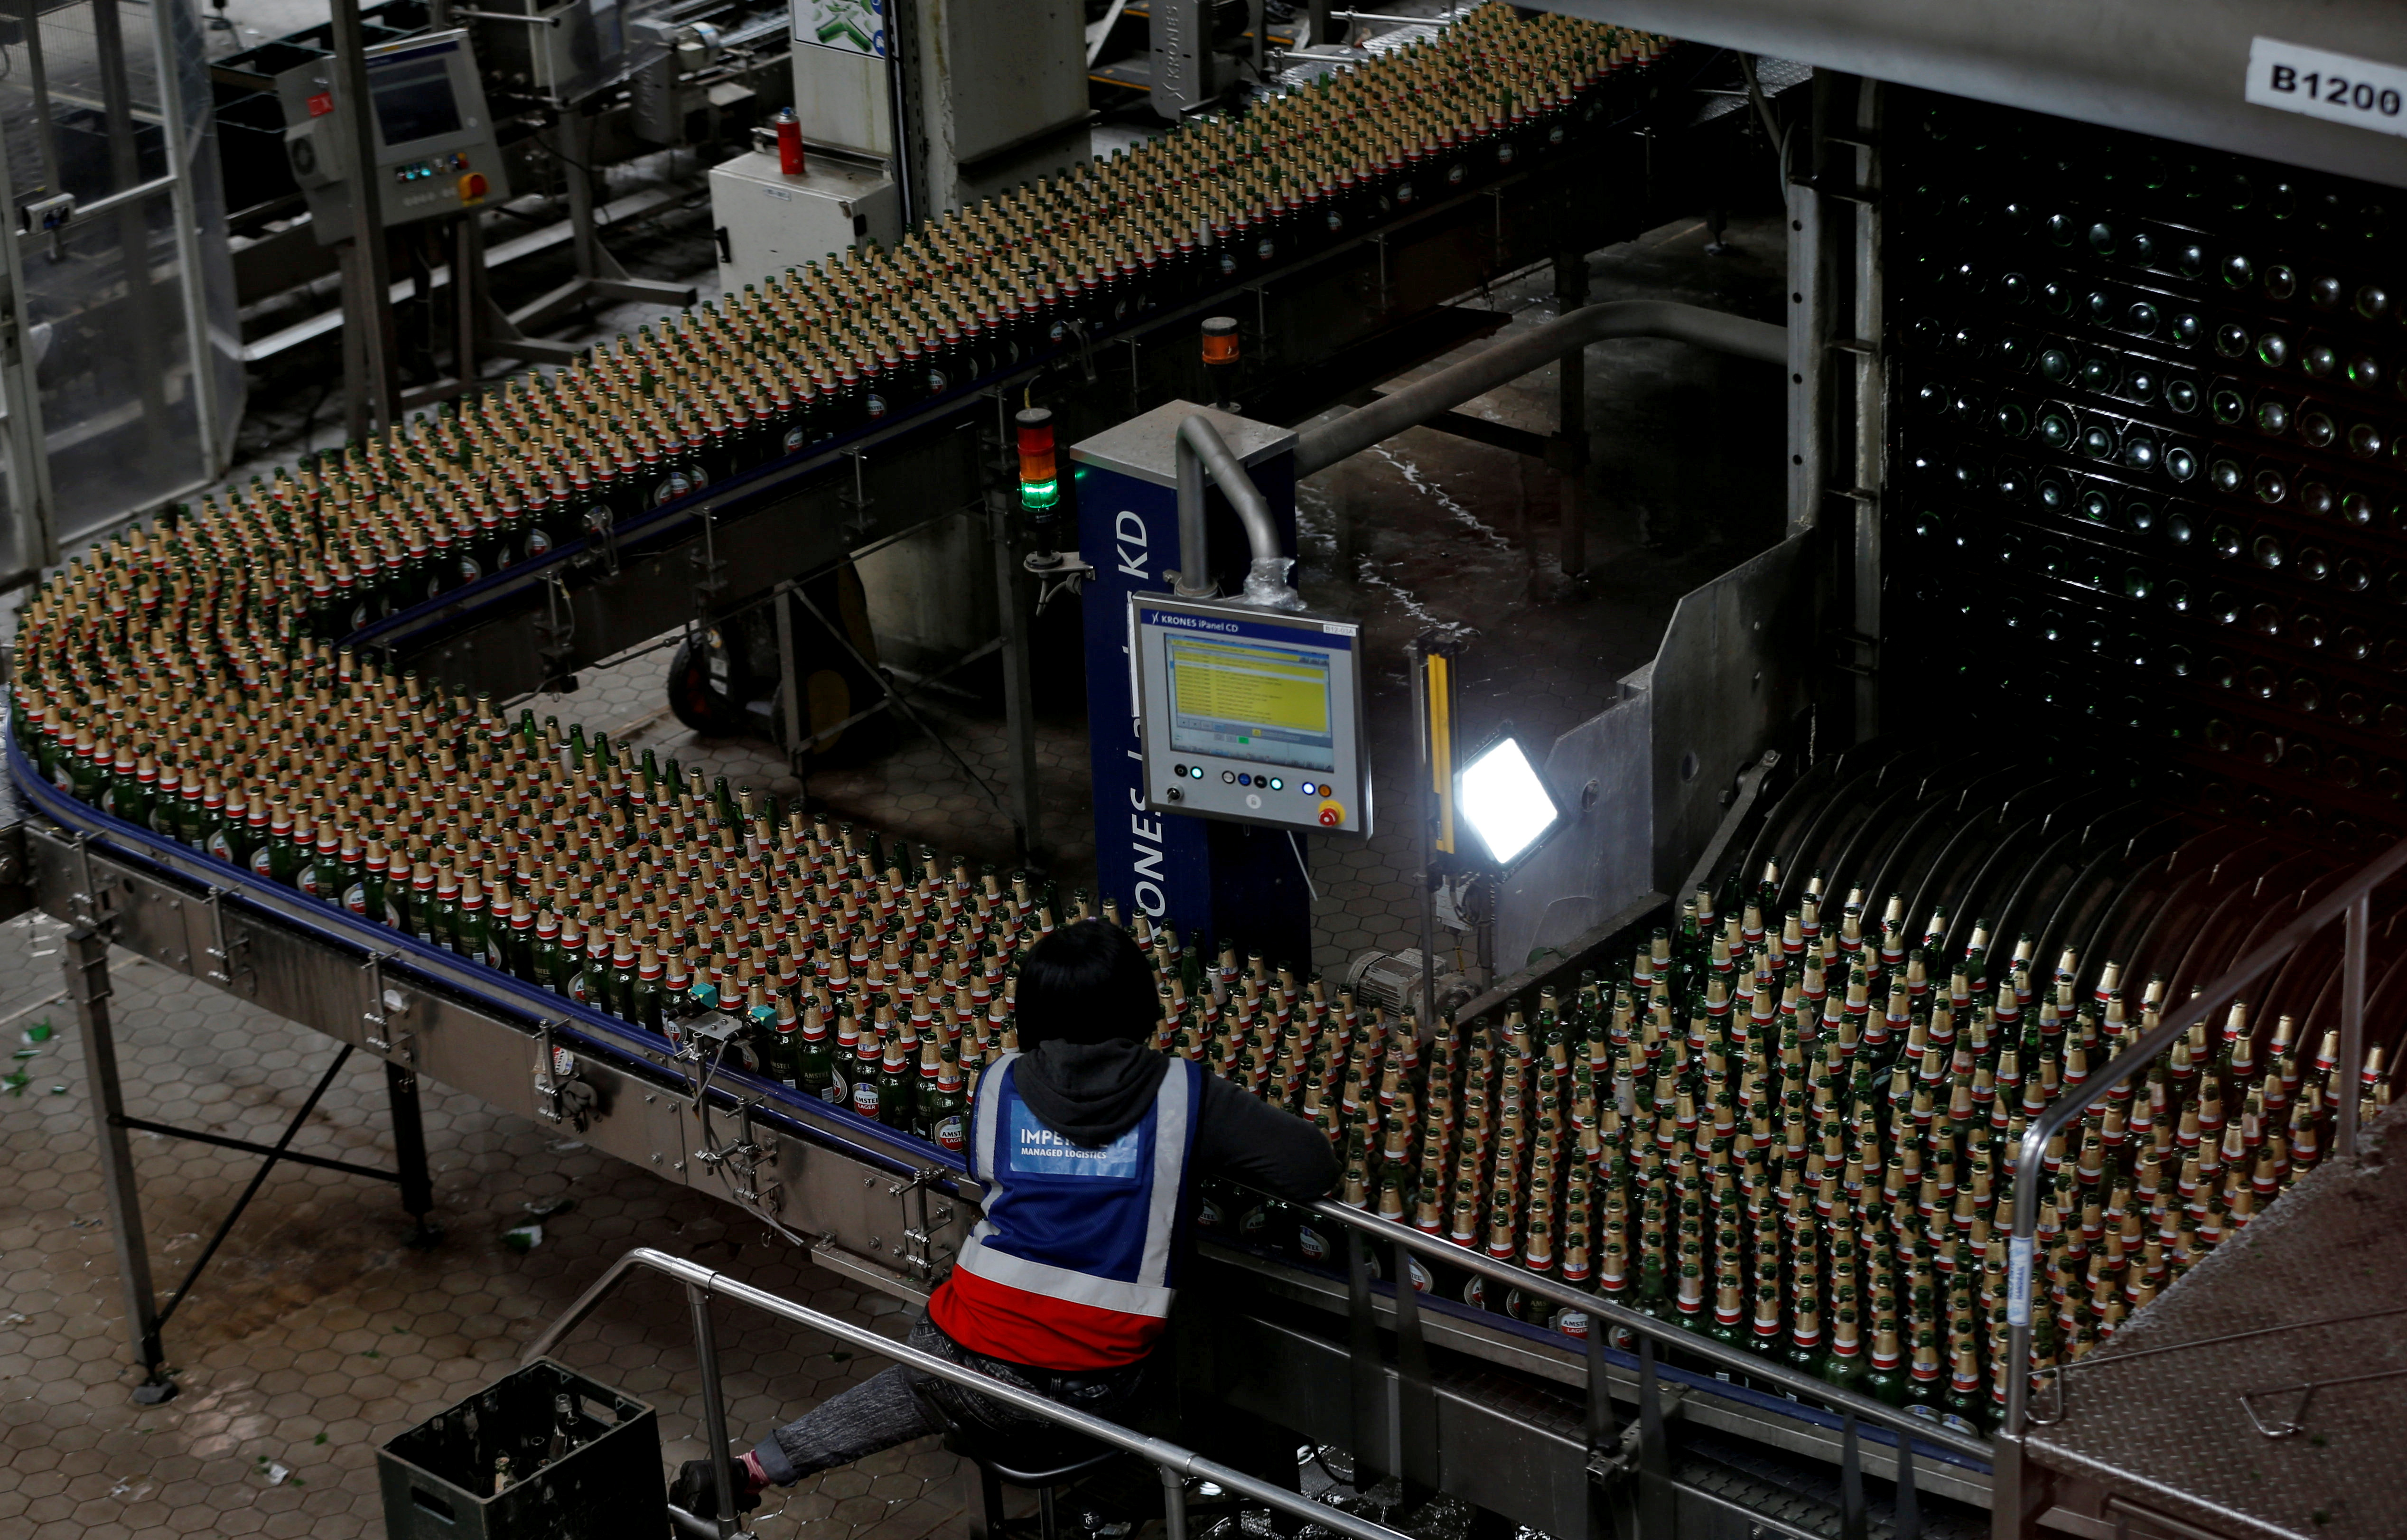 A worker inspects beer bottles on a conveyor belt at the Sedibeng Brewery in Midvaal outside Johannesburg, South Africa, September 15, 2016. REUTERS/Siphiwe Sibeko/File Photo